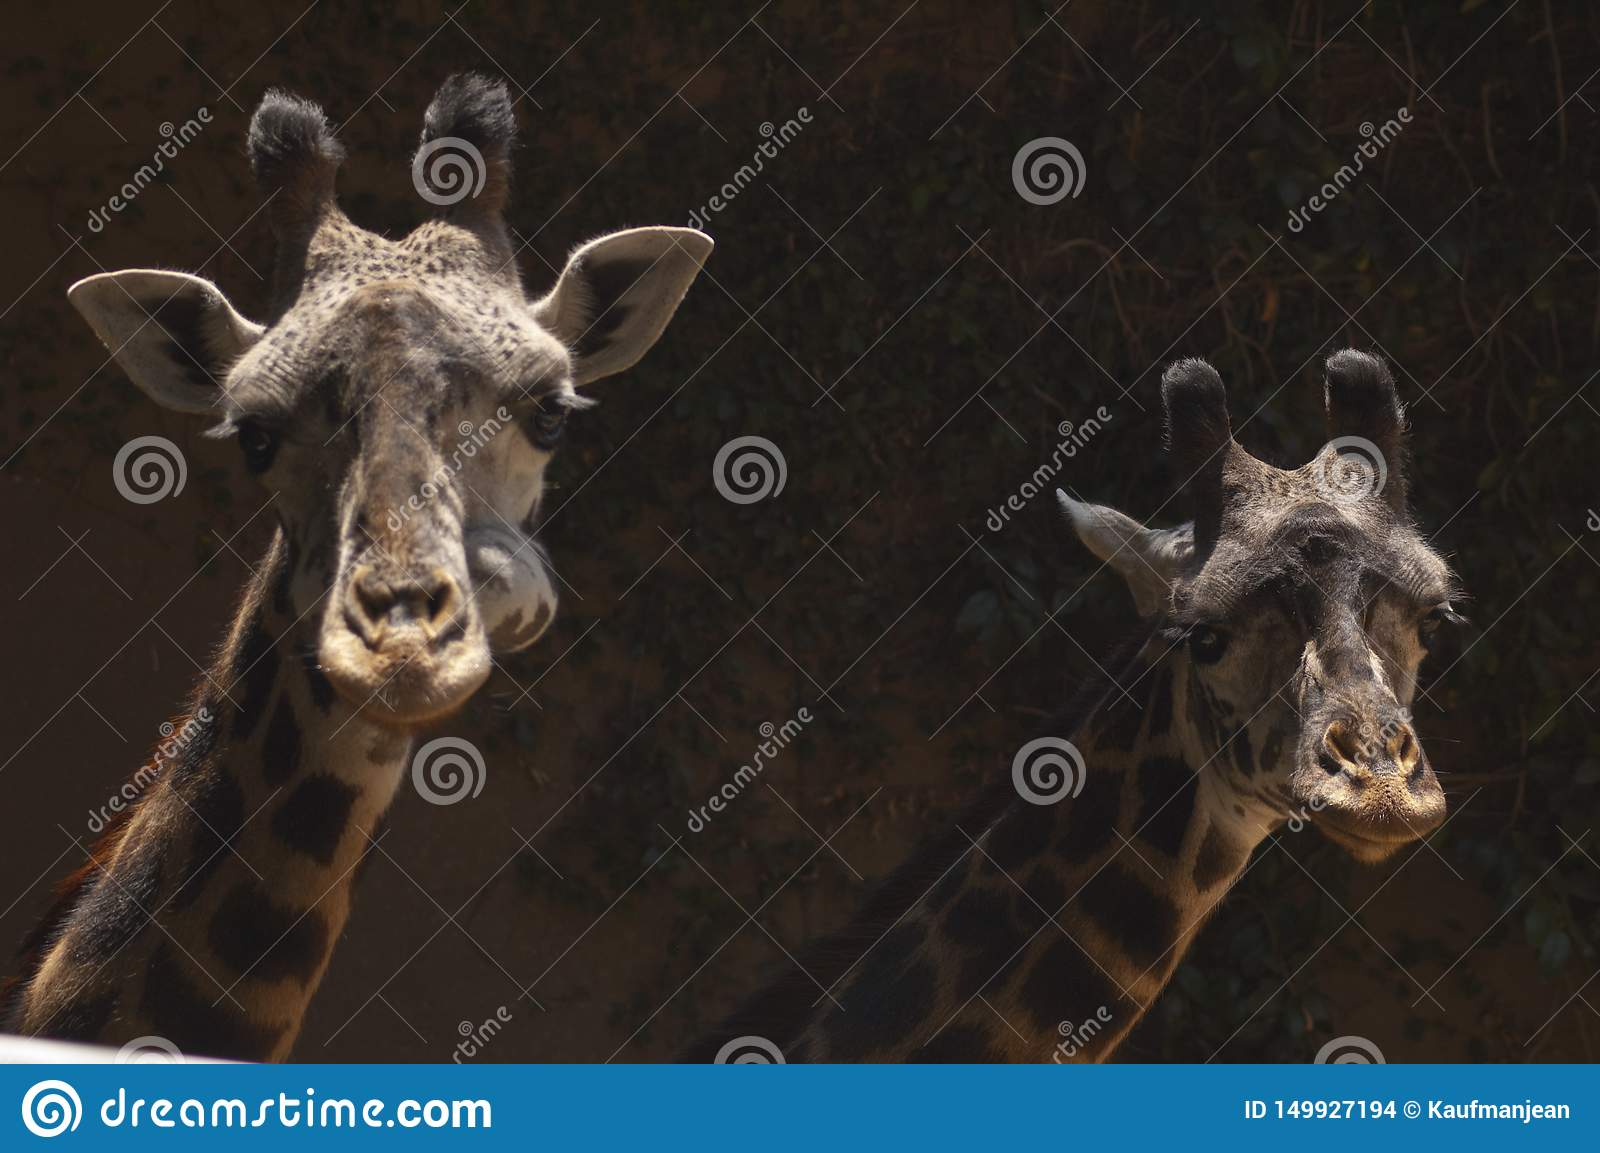 Two cute West African Giraffes look at camera - Los Angeles Zoo